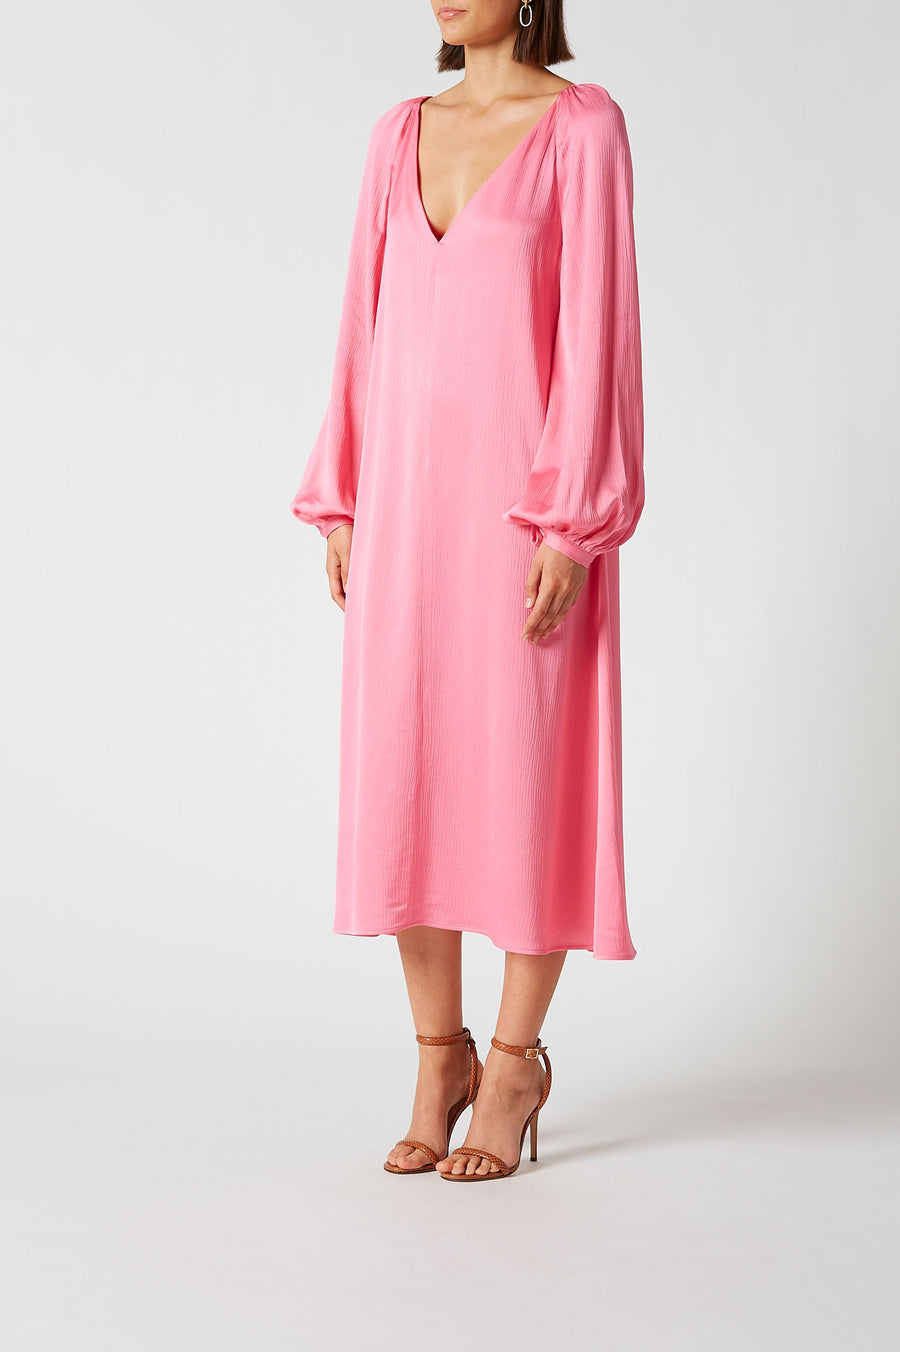 Cut from silk satin in an eye catching pink, the cocktail length dress features a deep v neckline and blouson sleeves.